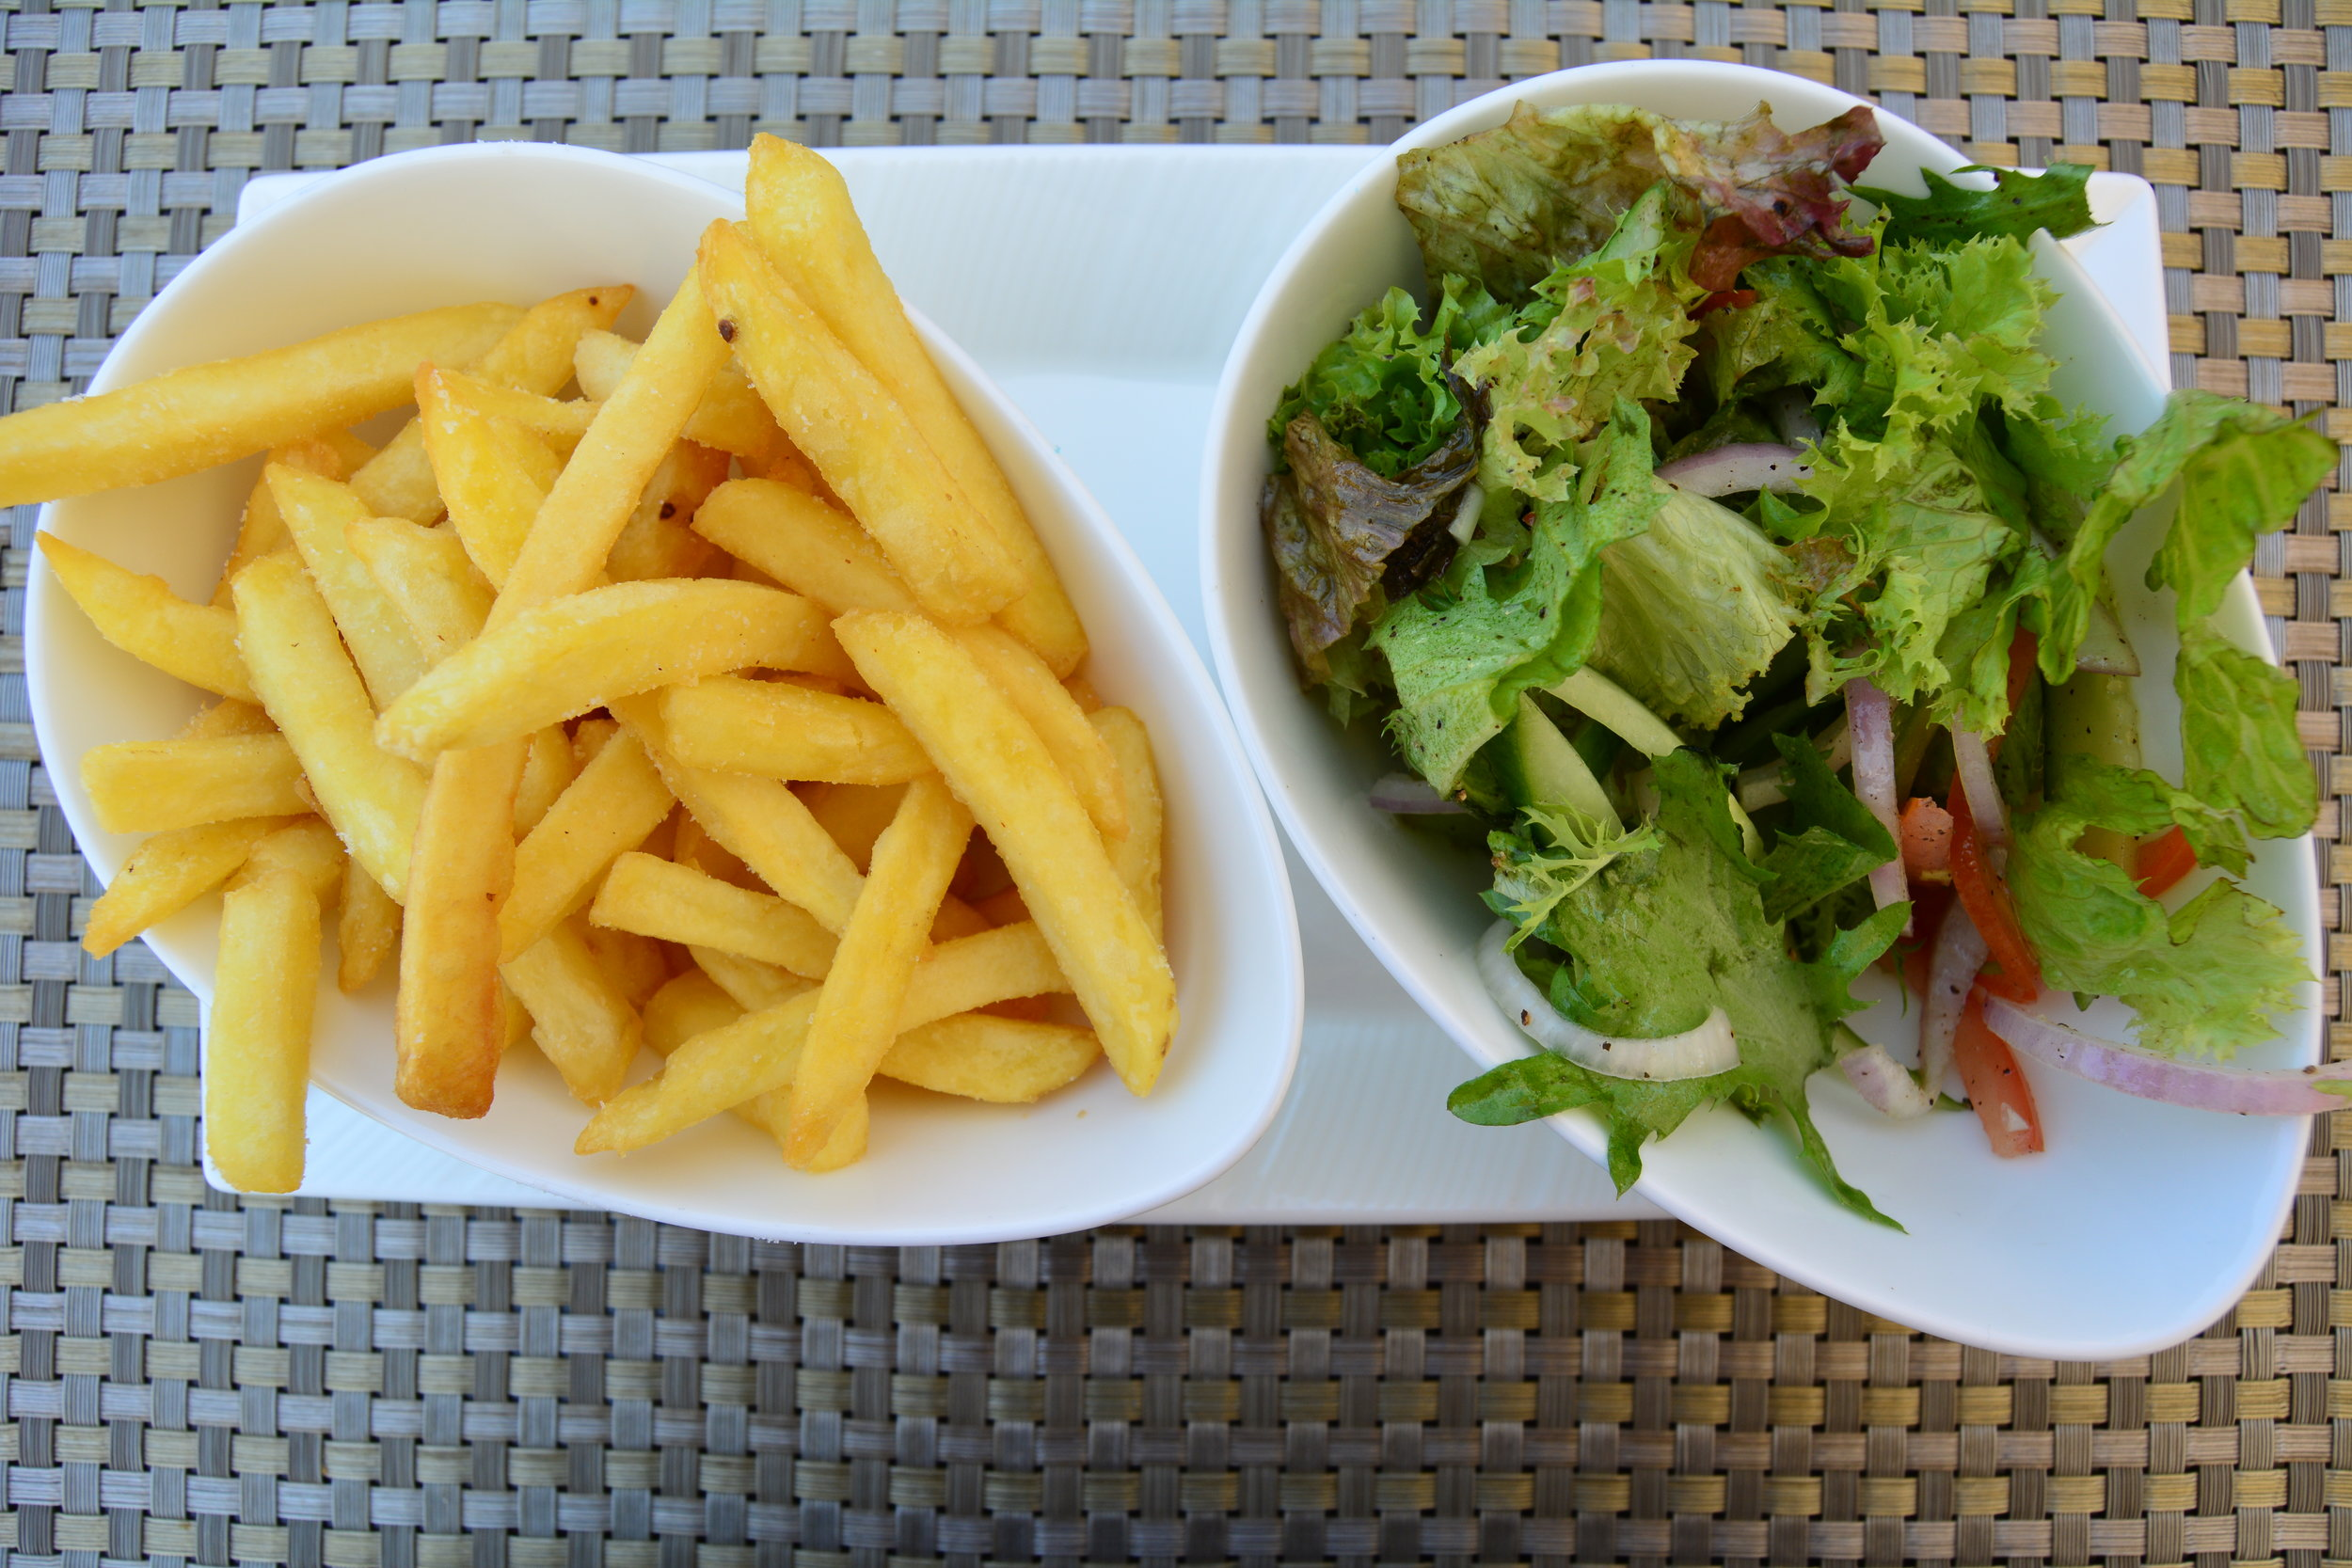 Chips and Mixed Greens (Shangri-La Muscat)